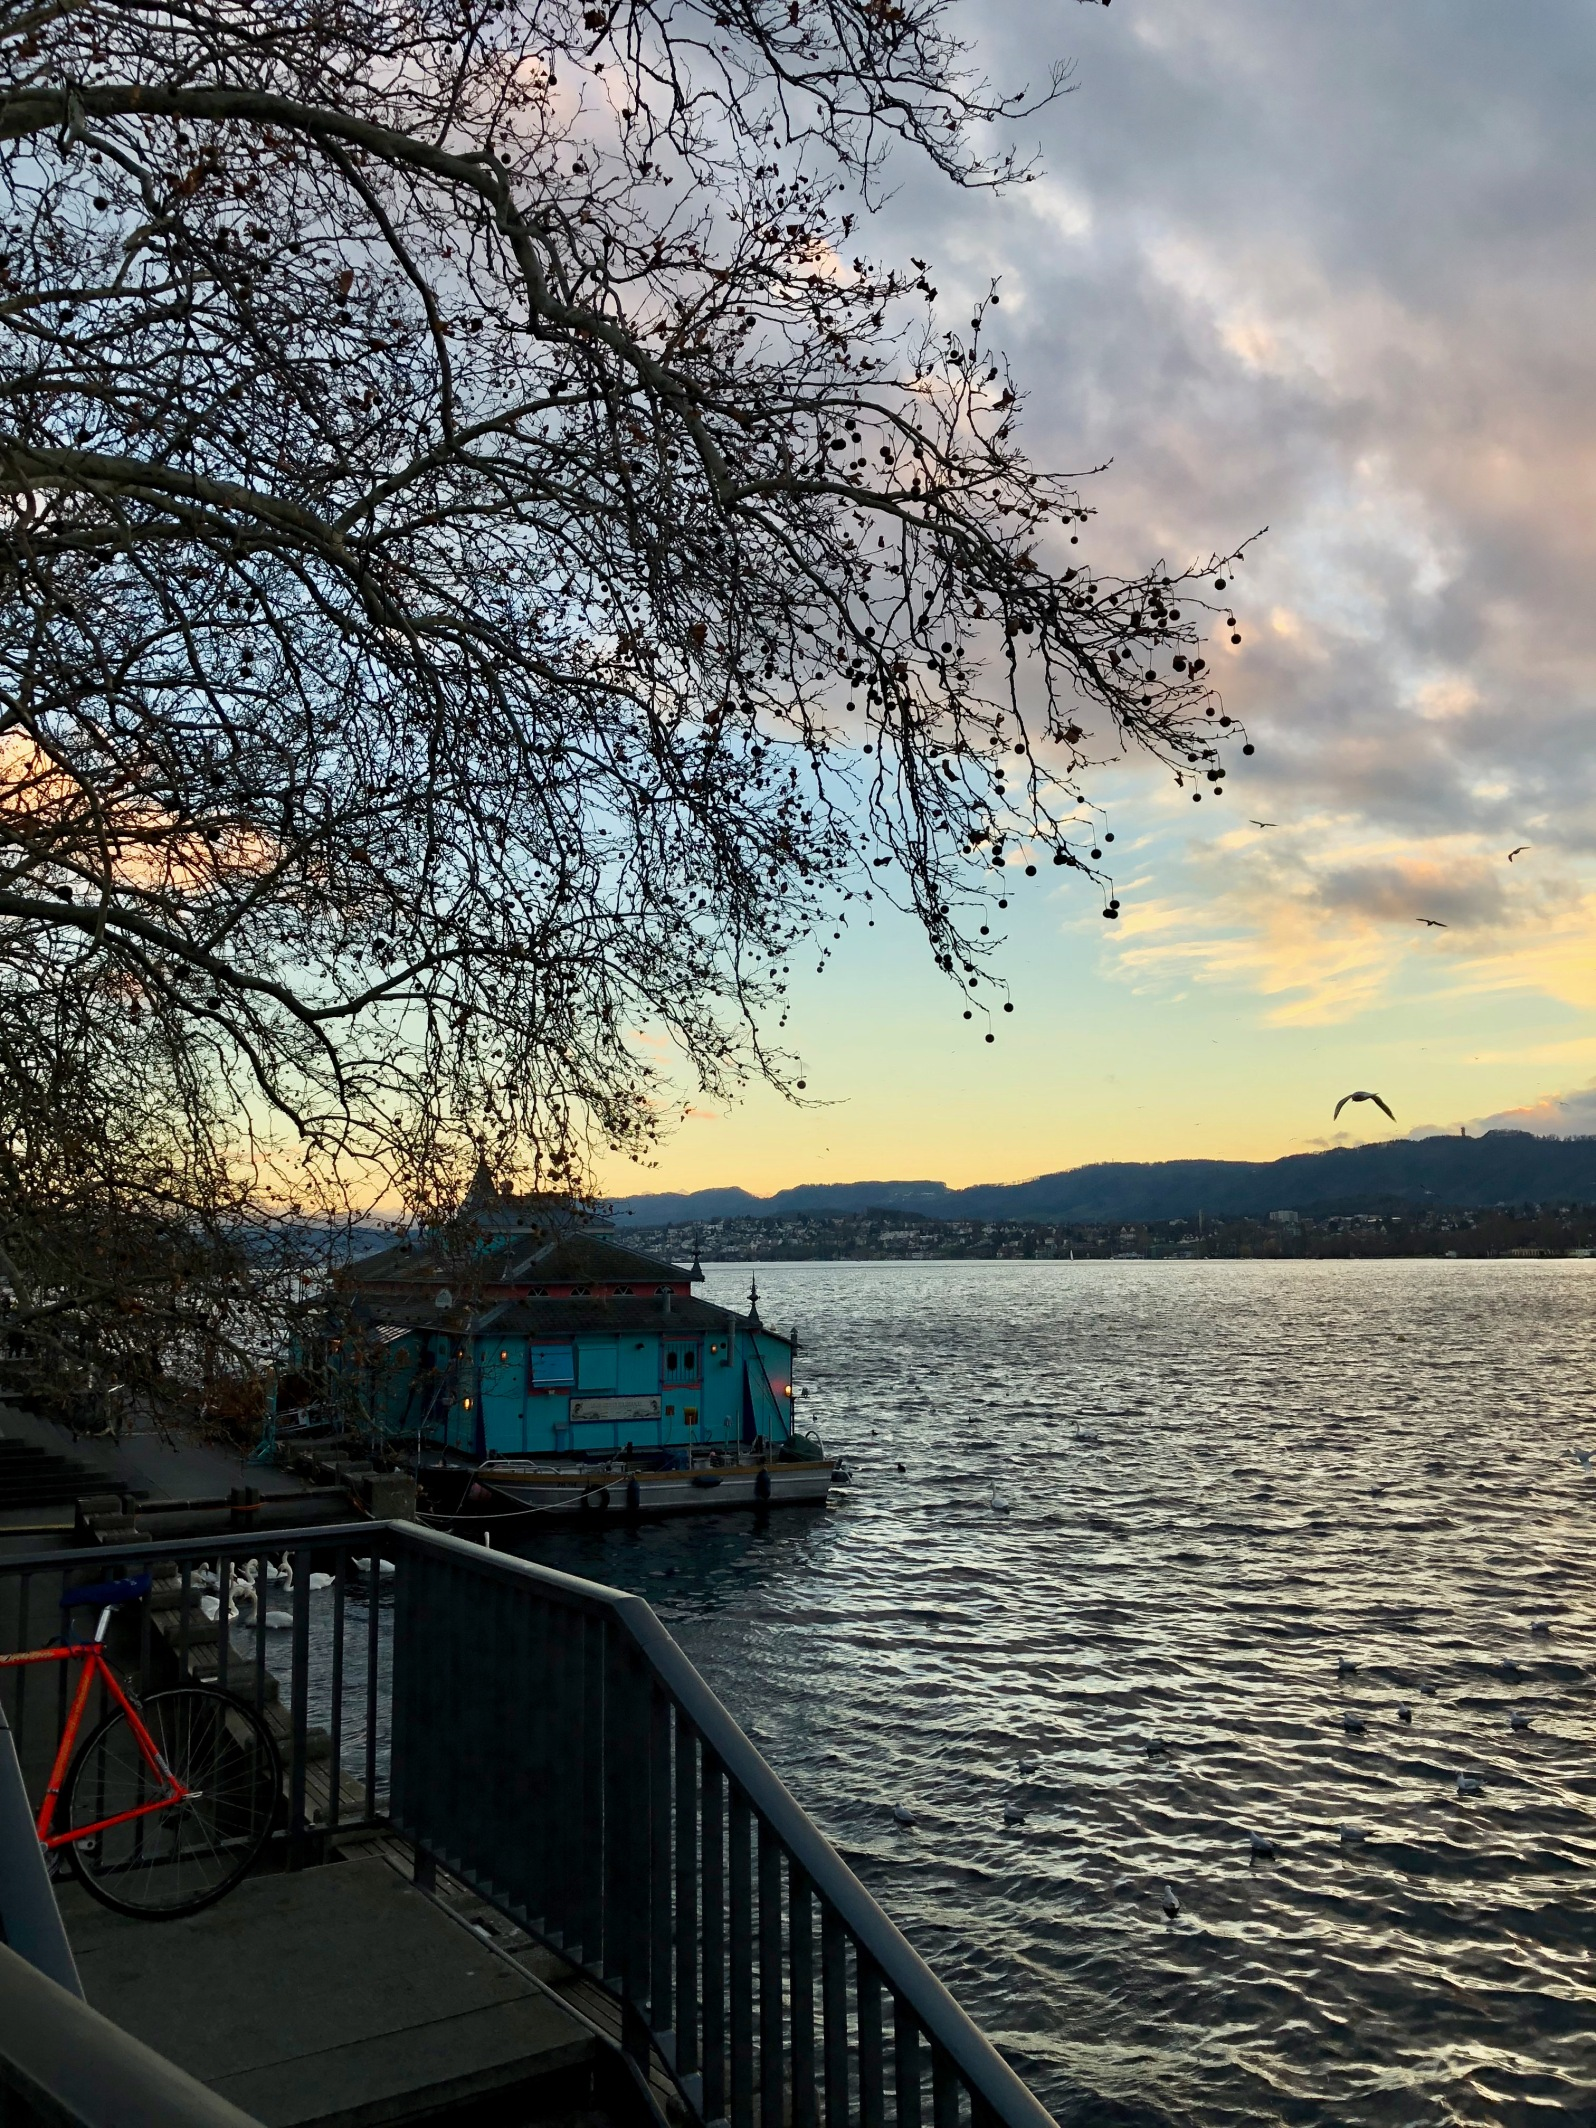 Zurich Lake with the sun setting